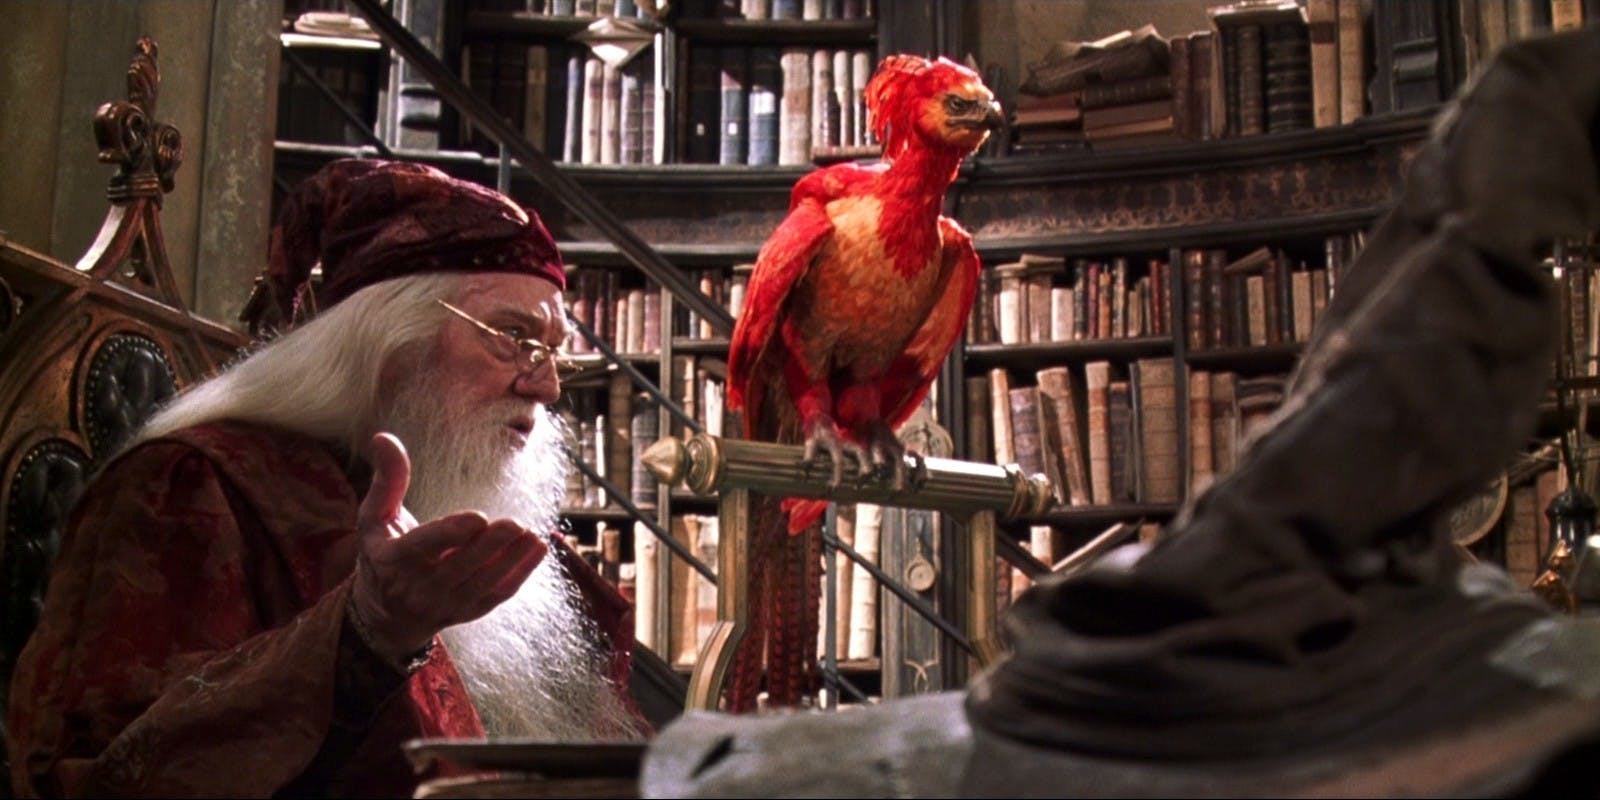 Fawkes the Phoenix in the 'Harry Potter' films